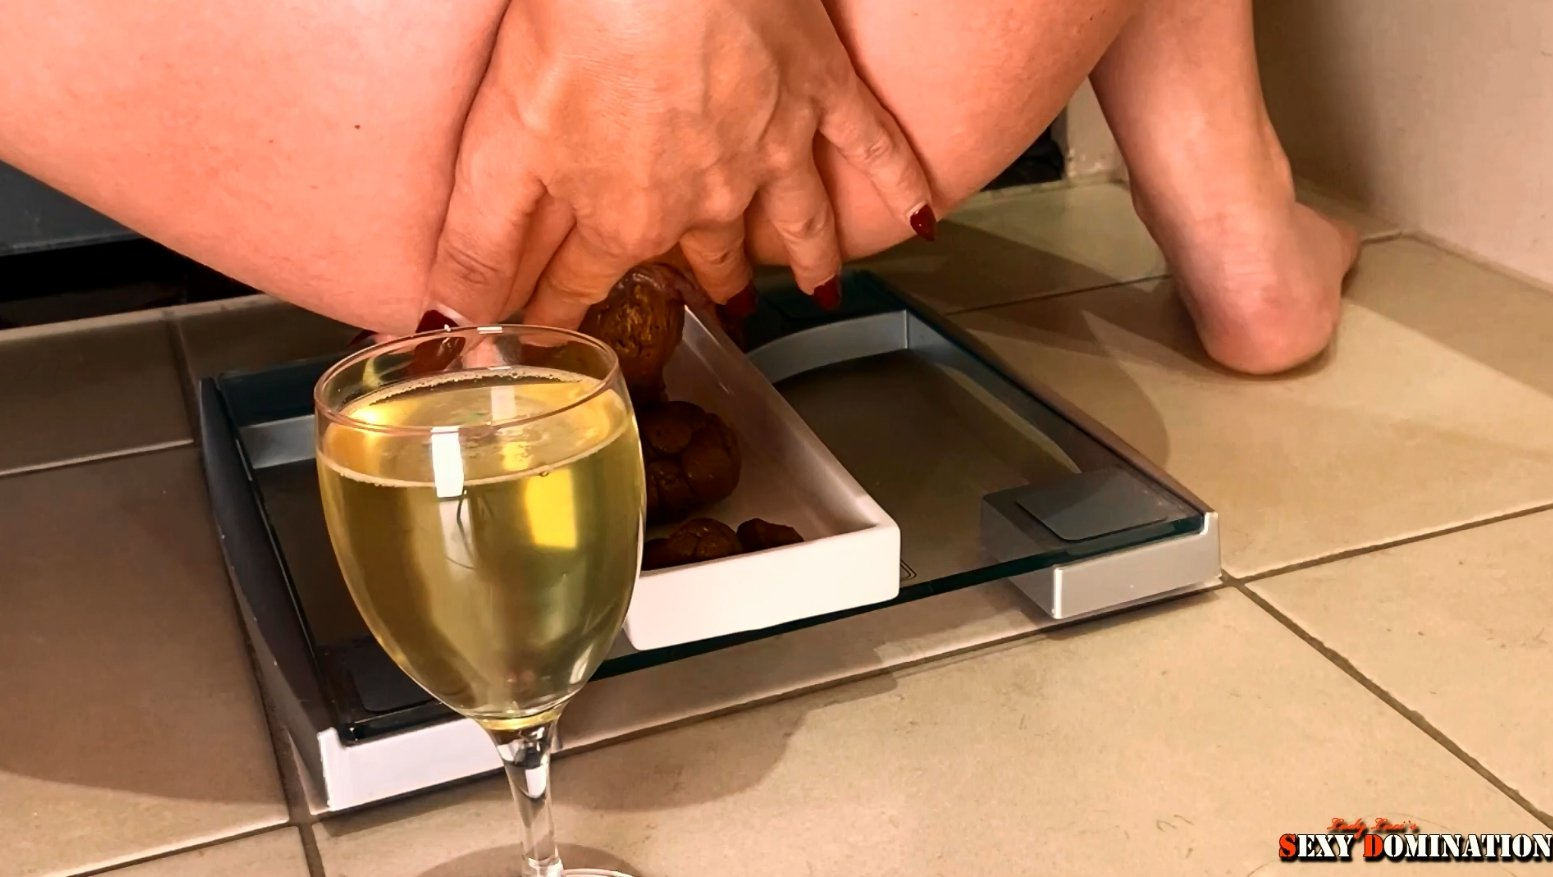 Exquisite champagne and finest pralines (Premium user request by Bert) with Lady Luci 4,99 €